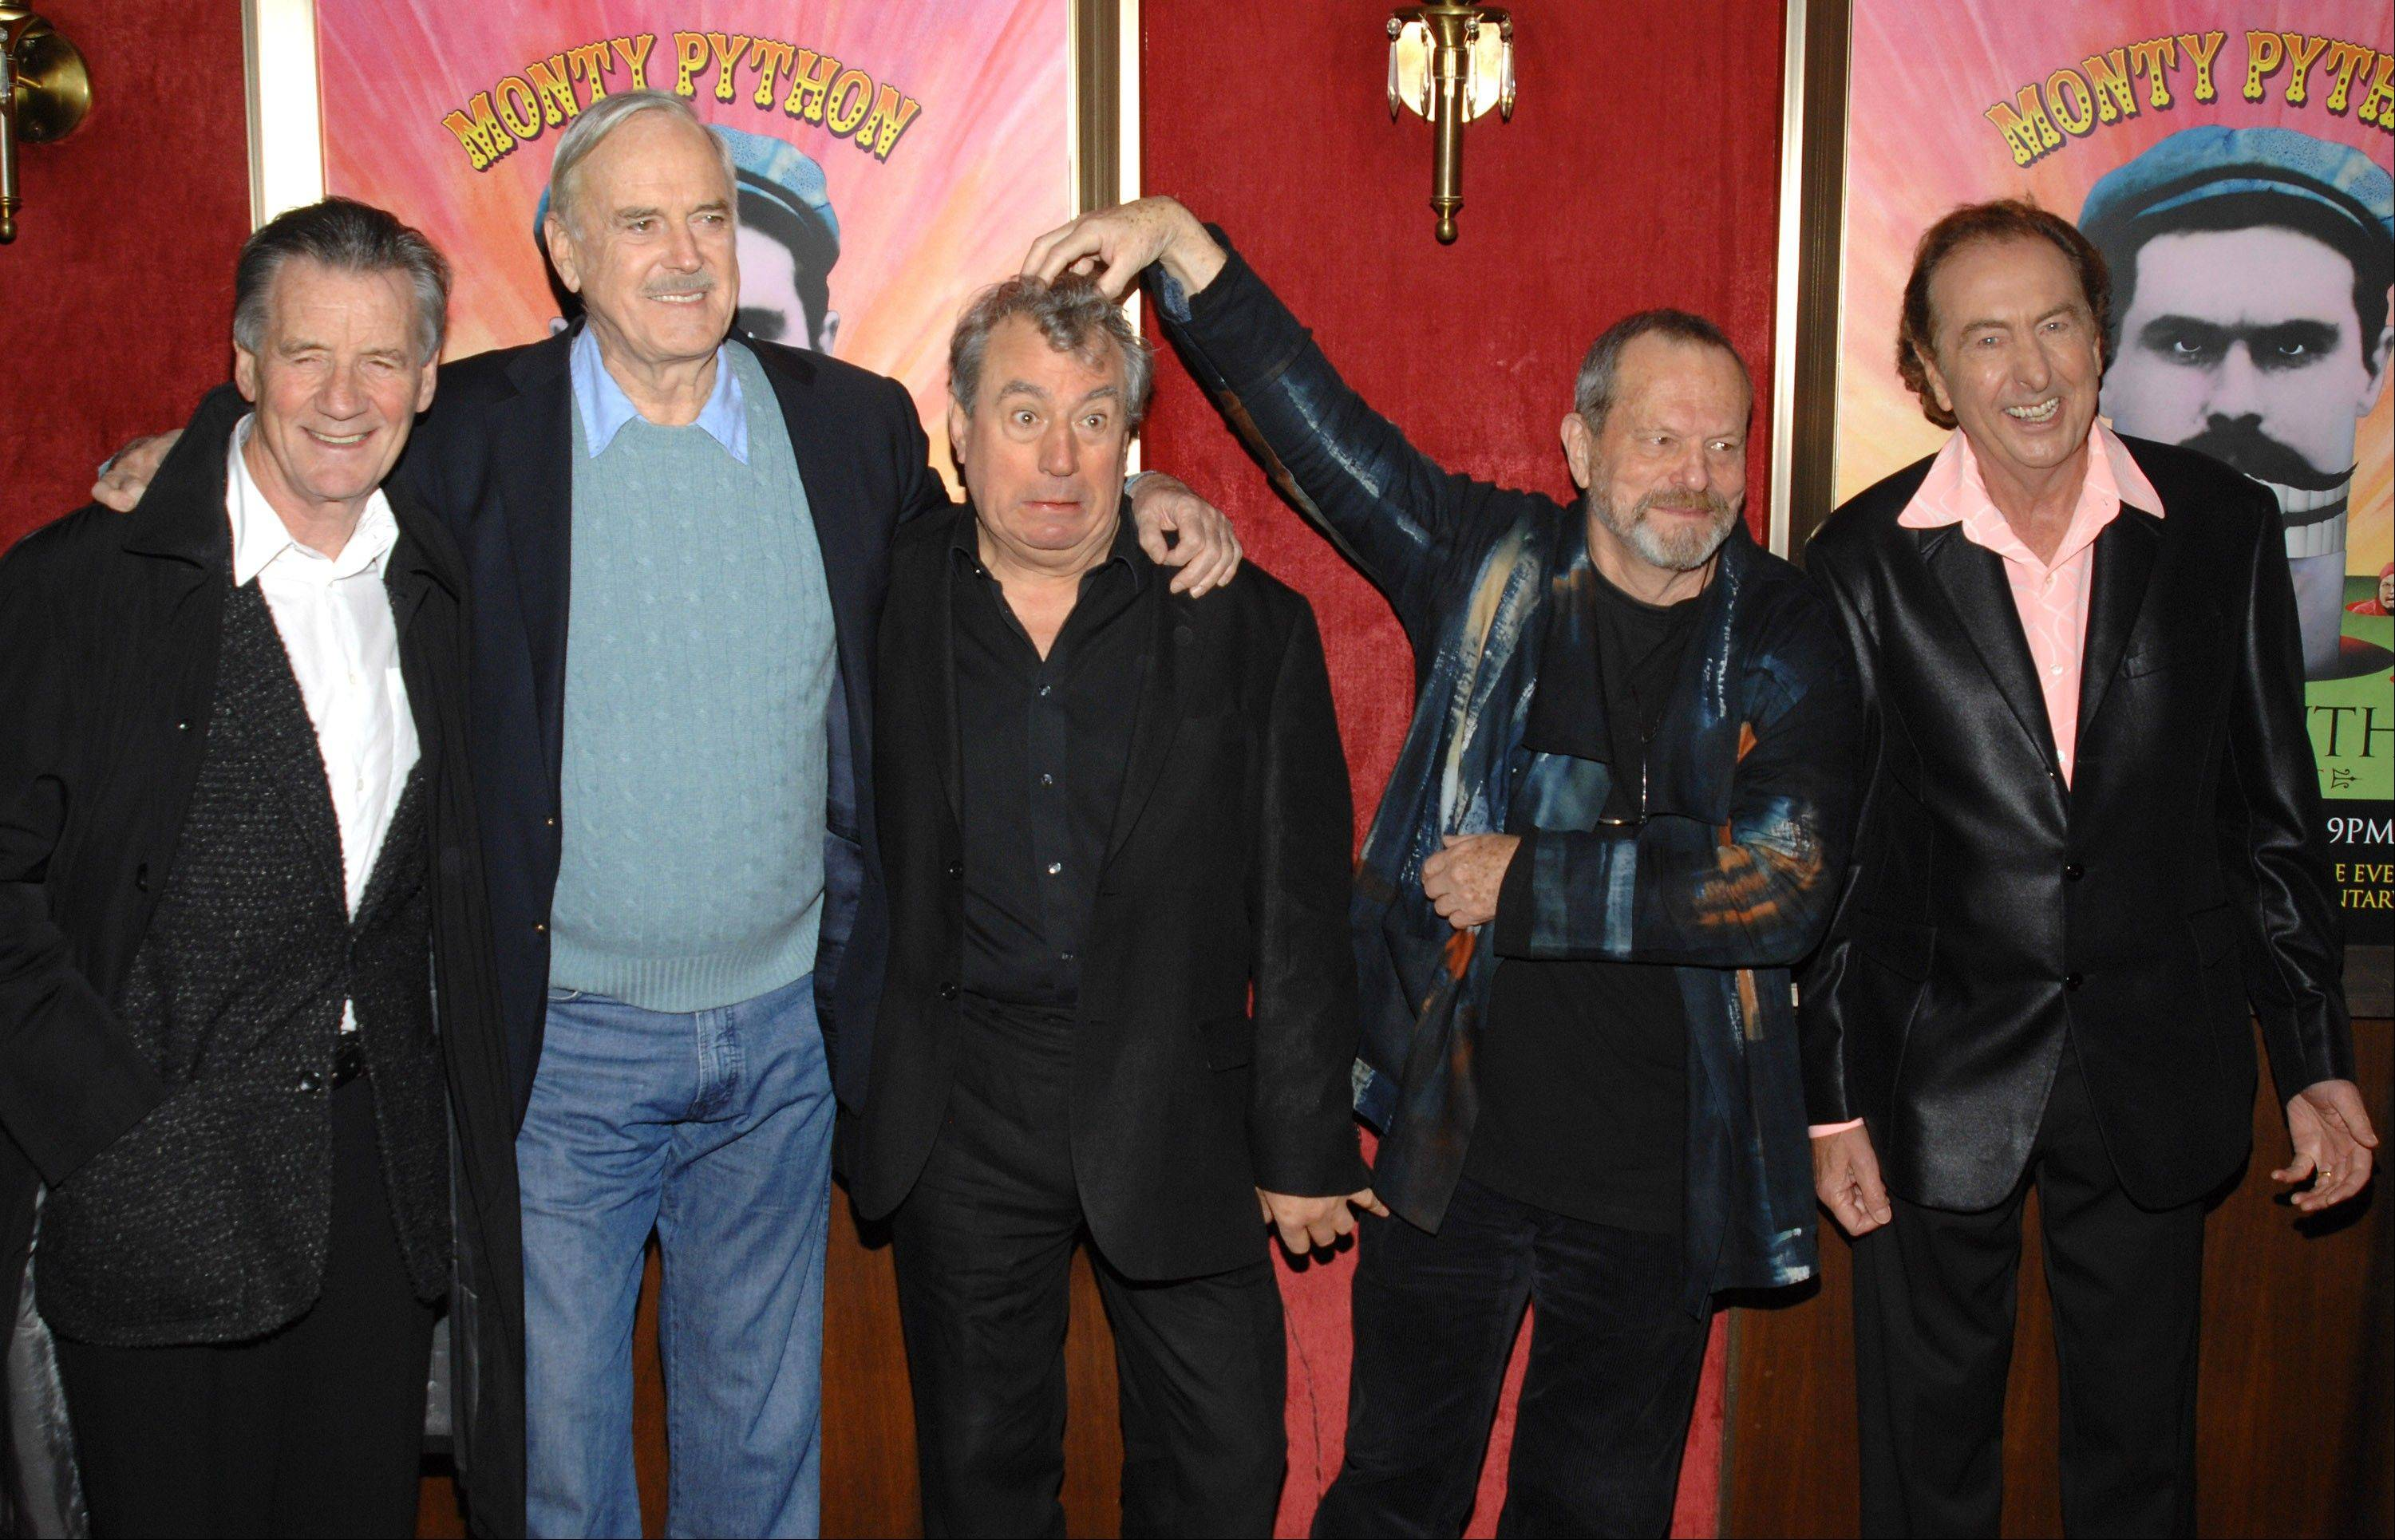 Monty Python actors Michael Palin, John Cleese, Terry Jones, Terry Gilliam and Eric Idle are set to reunite for a stage show.